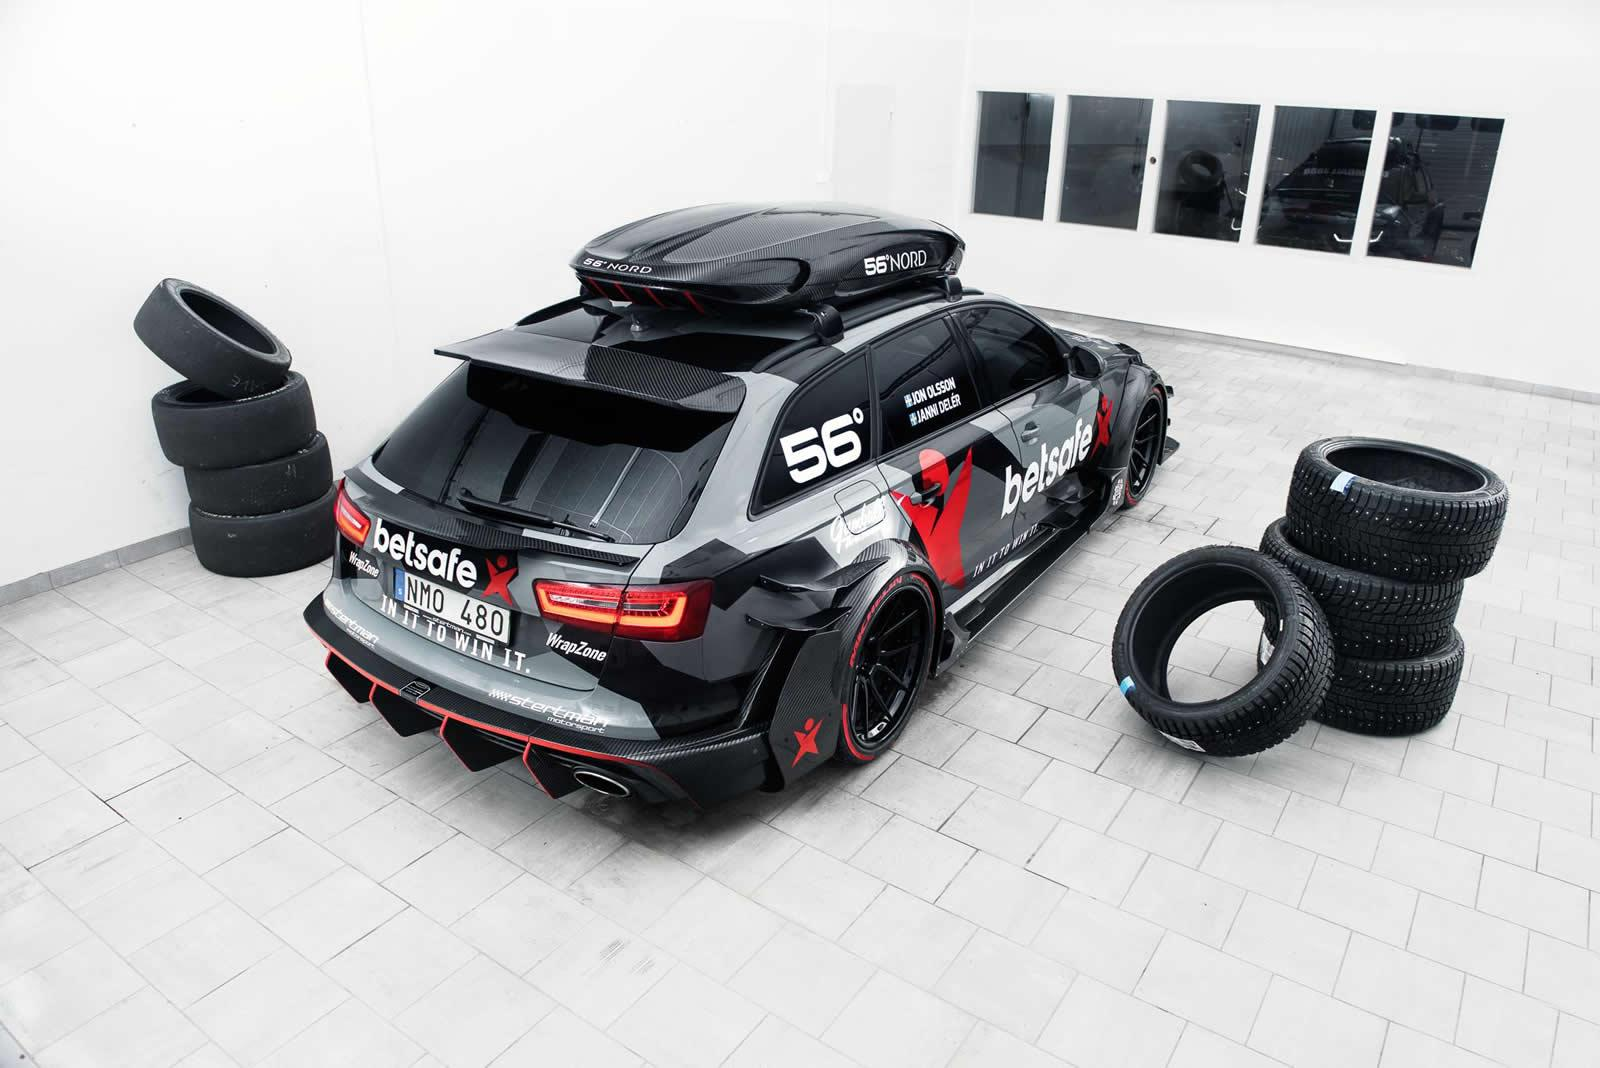 el nuevo audi rs 6 dtm de jon olsson revista del motor. Black Bedroom Furniture Sets. Home Design Ideas